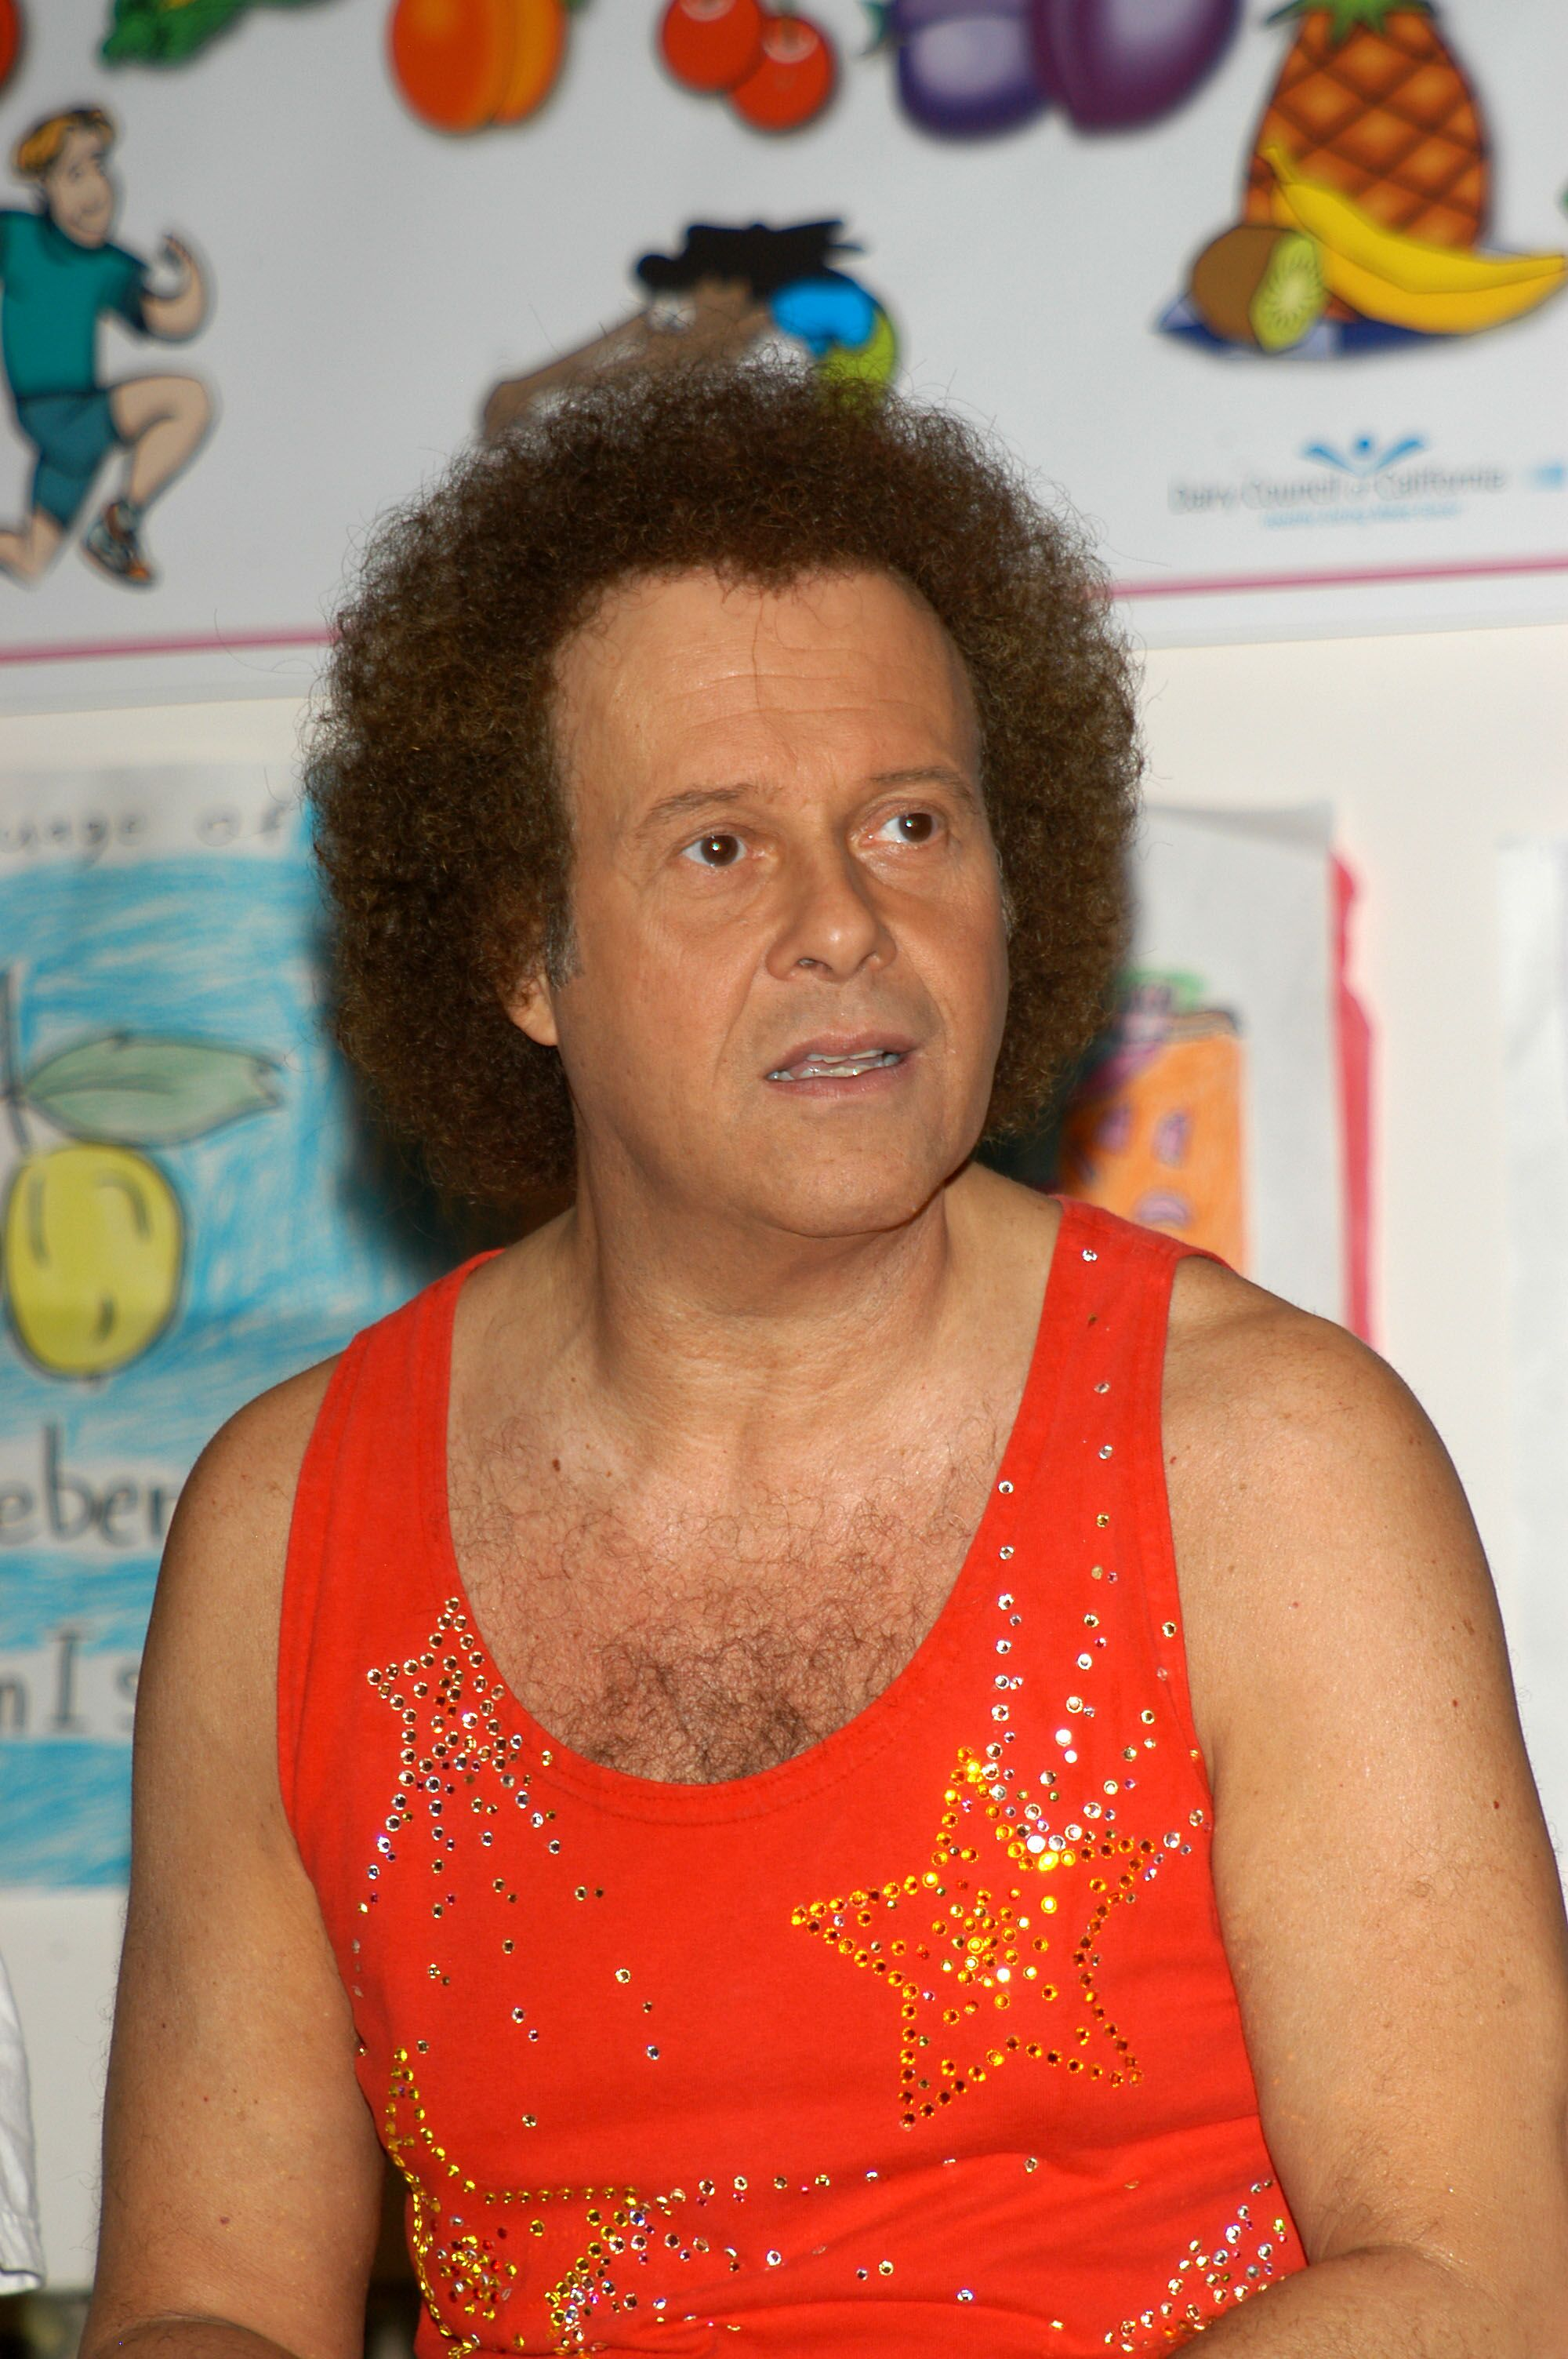 Richard Simmons speaks to students about exercise and nutrition at the Third Annual Nutrition Advisory Council Symposium. | Source: Getty Images